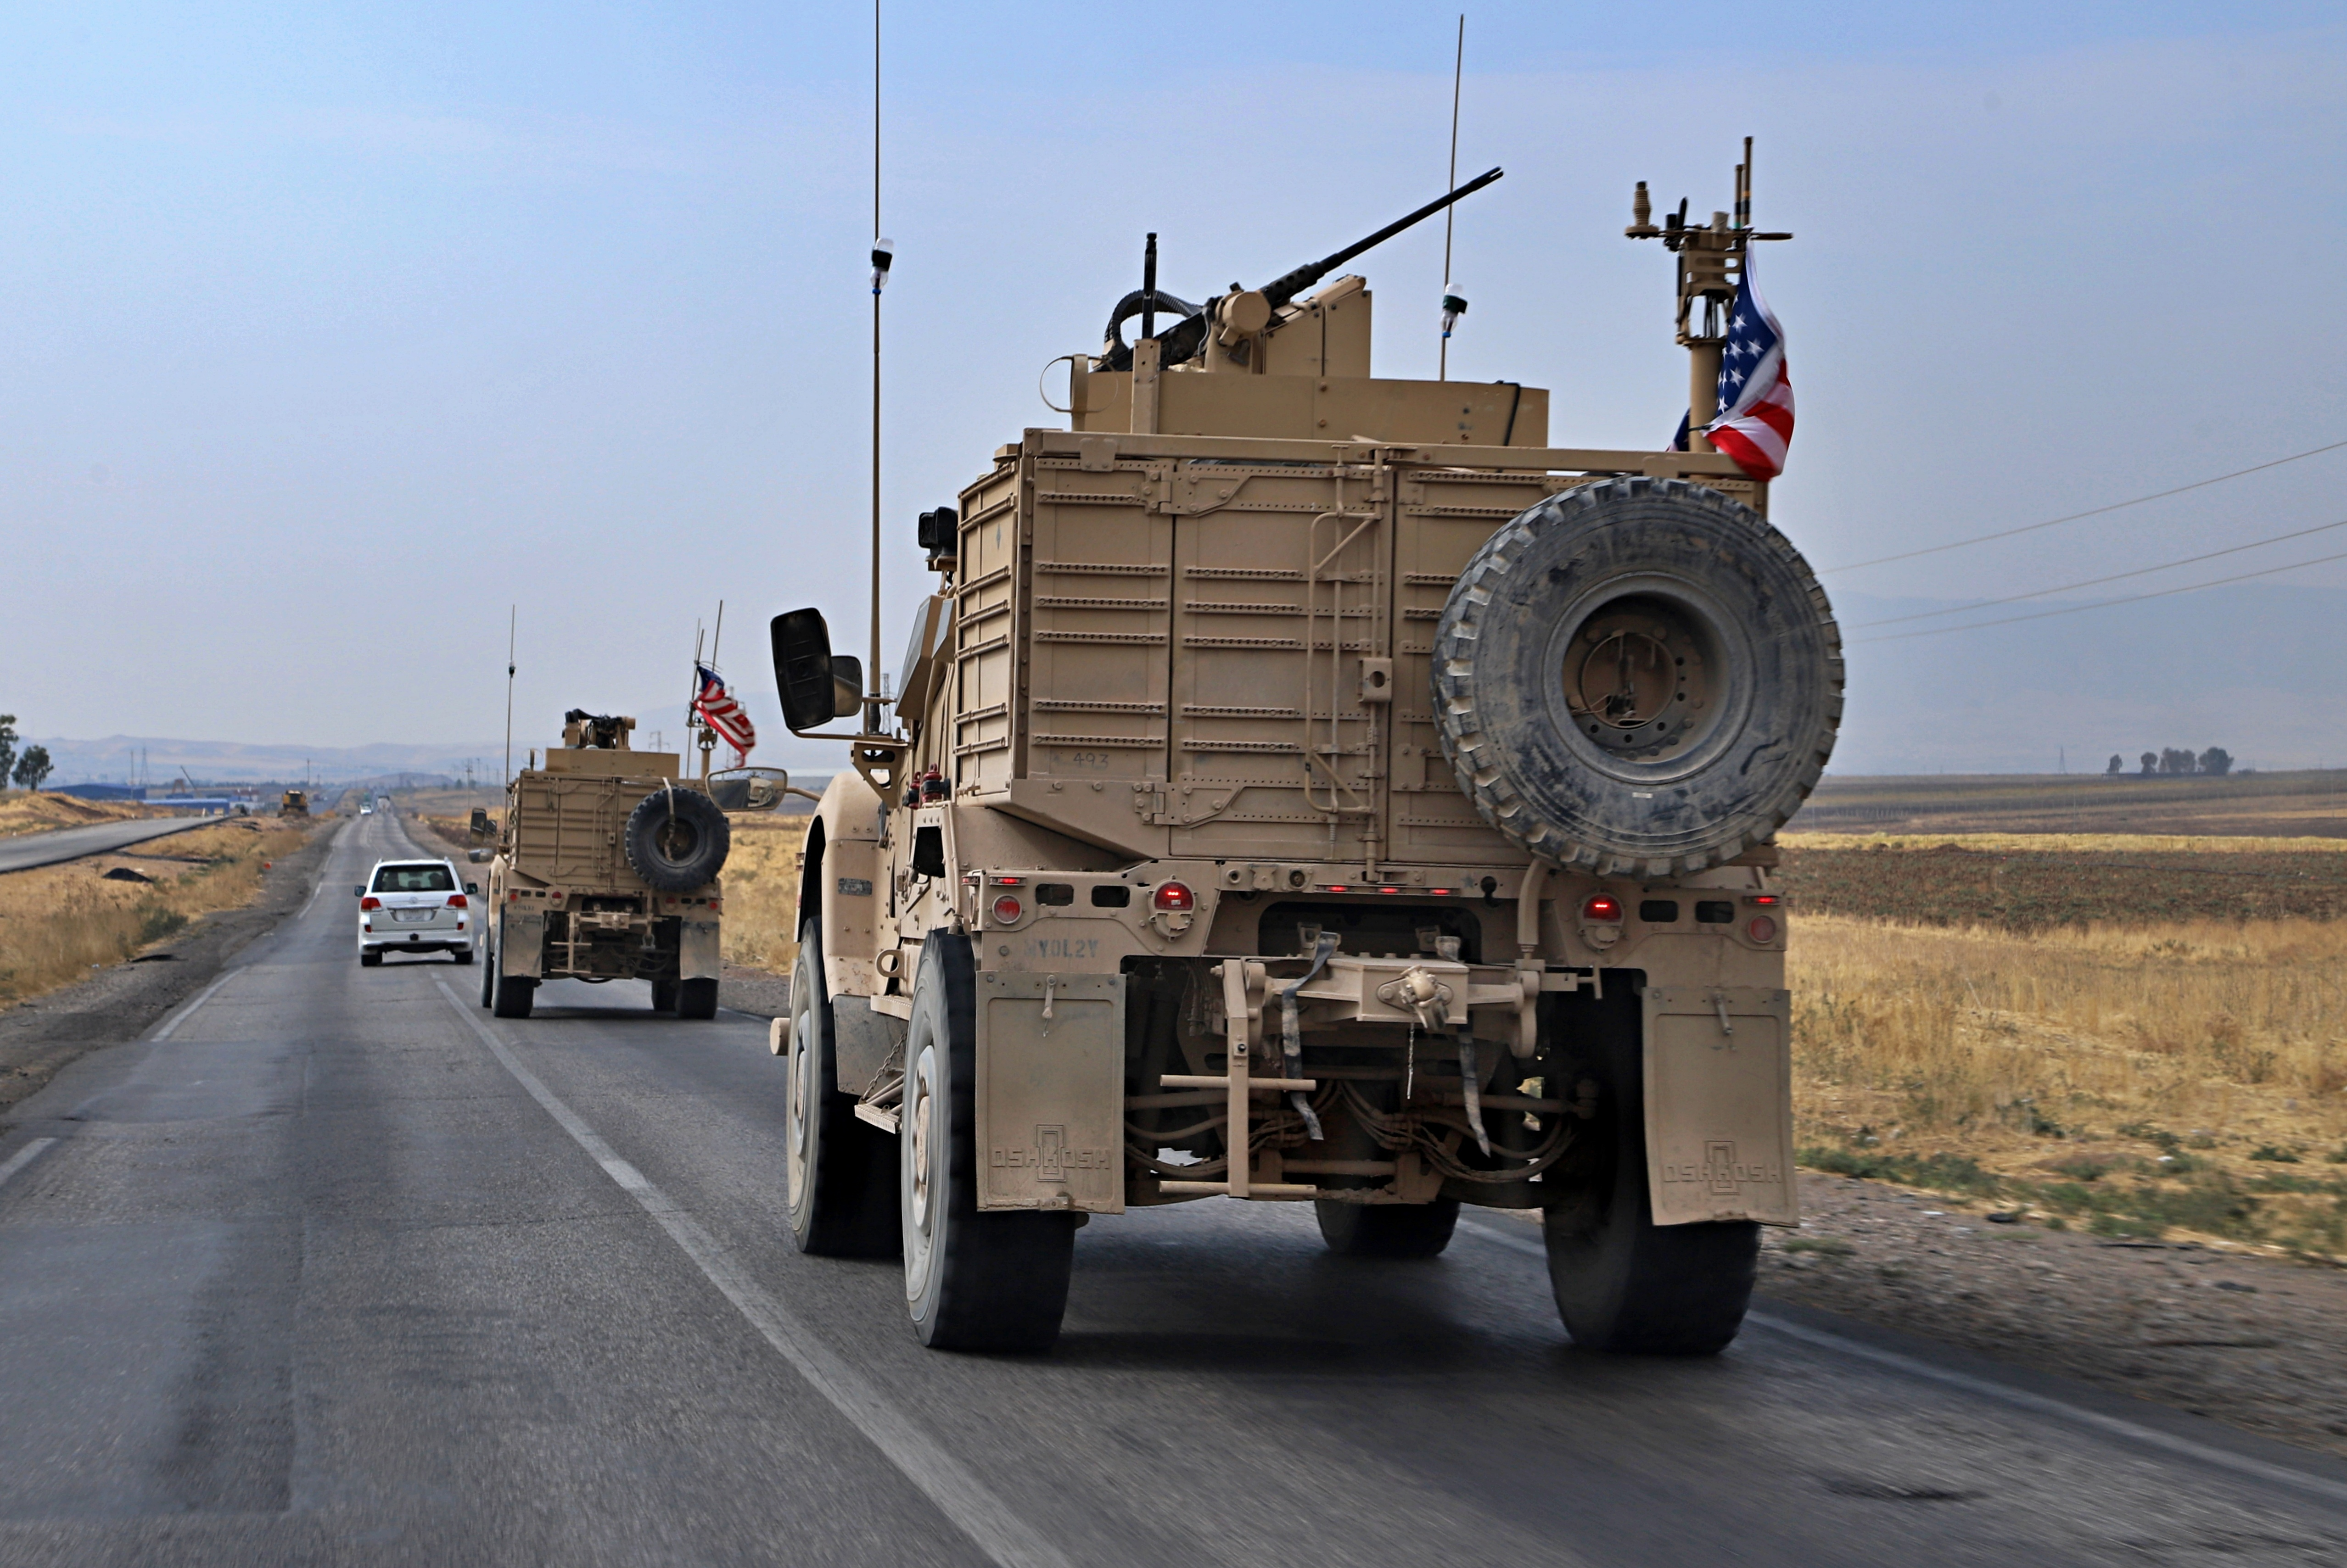 A U.S. military convoy arrives near Dahuk, Iraq, on Monday, Oct. 21, 2019. Defense Secretary Mark Esper said Monday that under the current plan all U.S. troops leaving Syria will go to western Iraq and the military will continue to conduct operations against the Islamic State group to prevent its resurgence. (AP Photo)